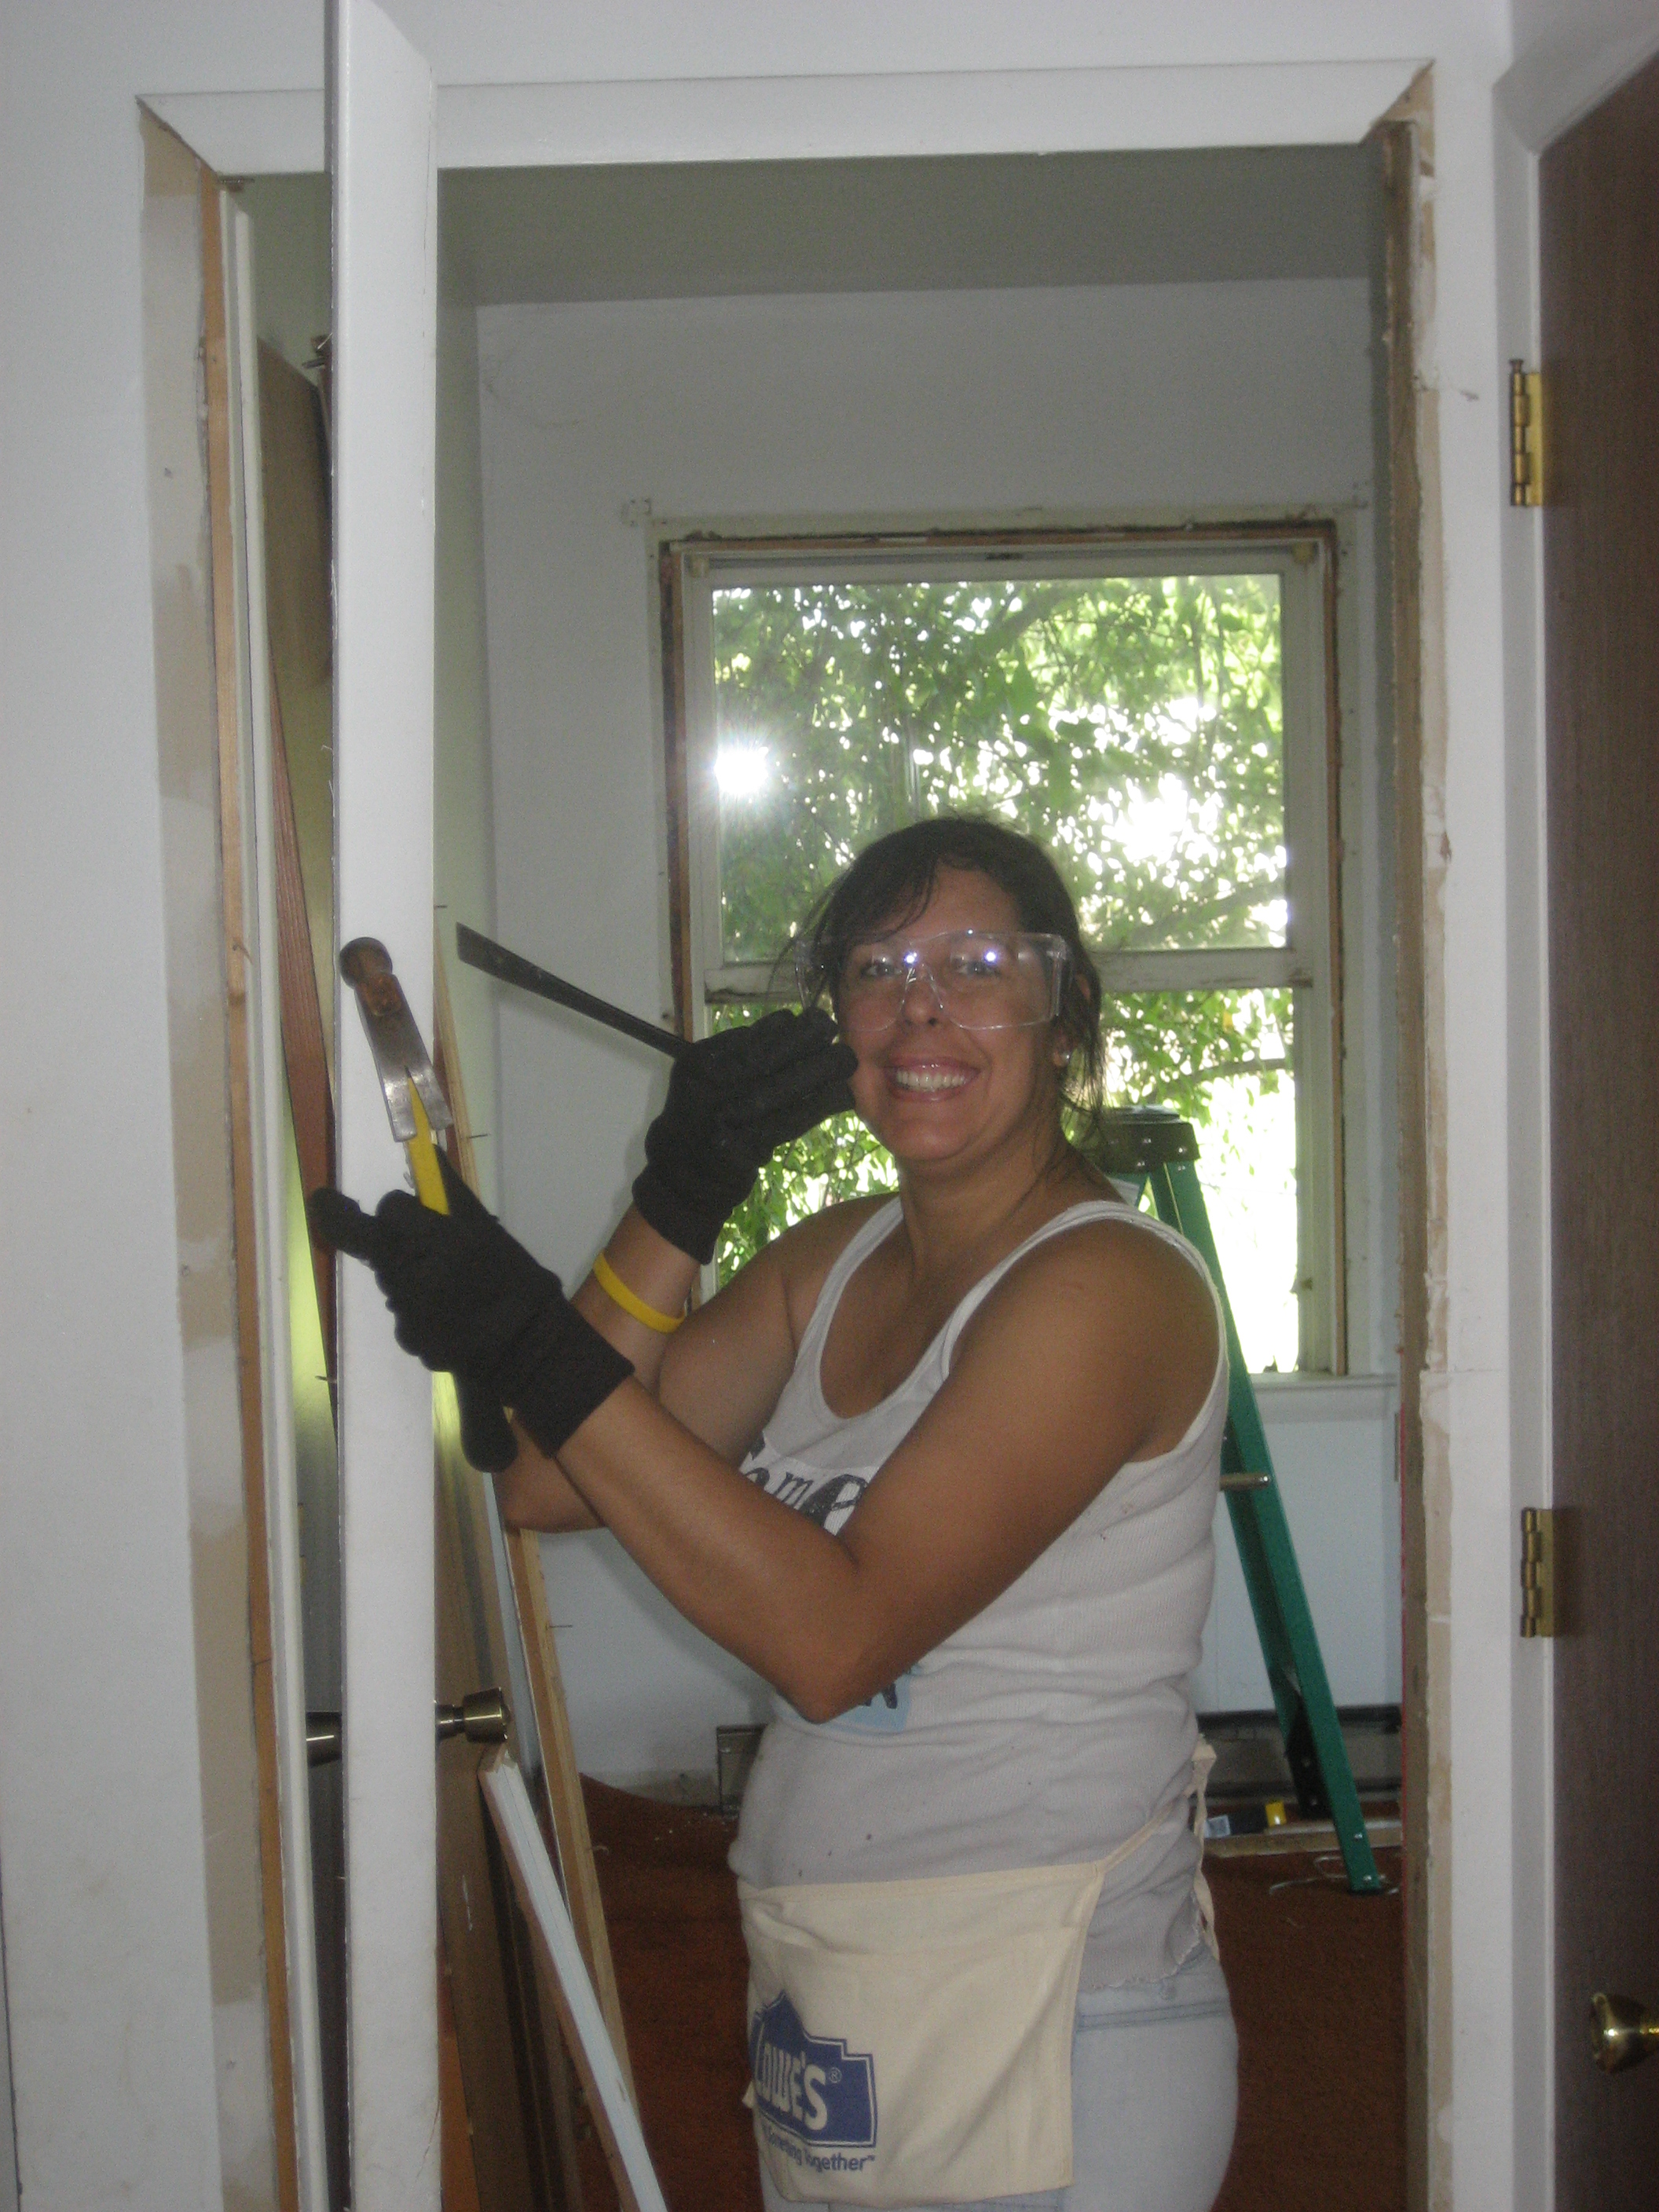 Volunteer with Central Delaware Habitat for Humanity